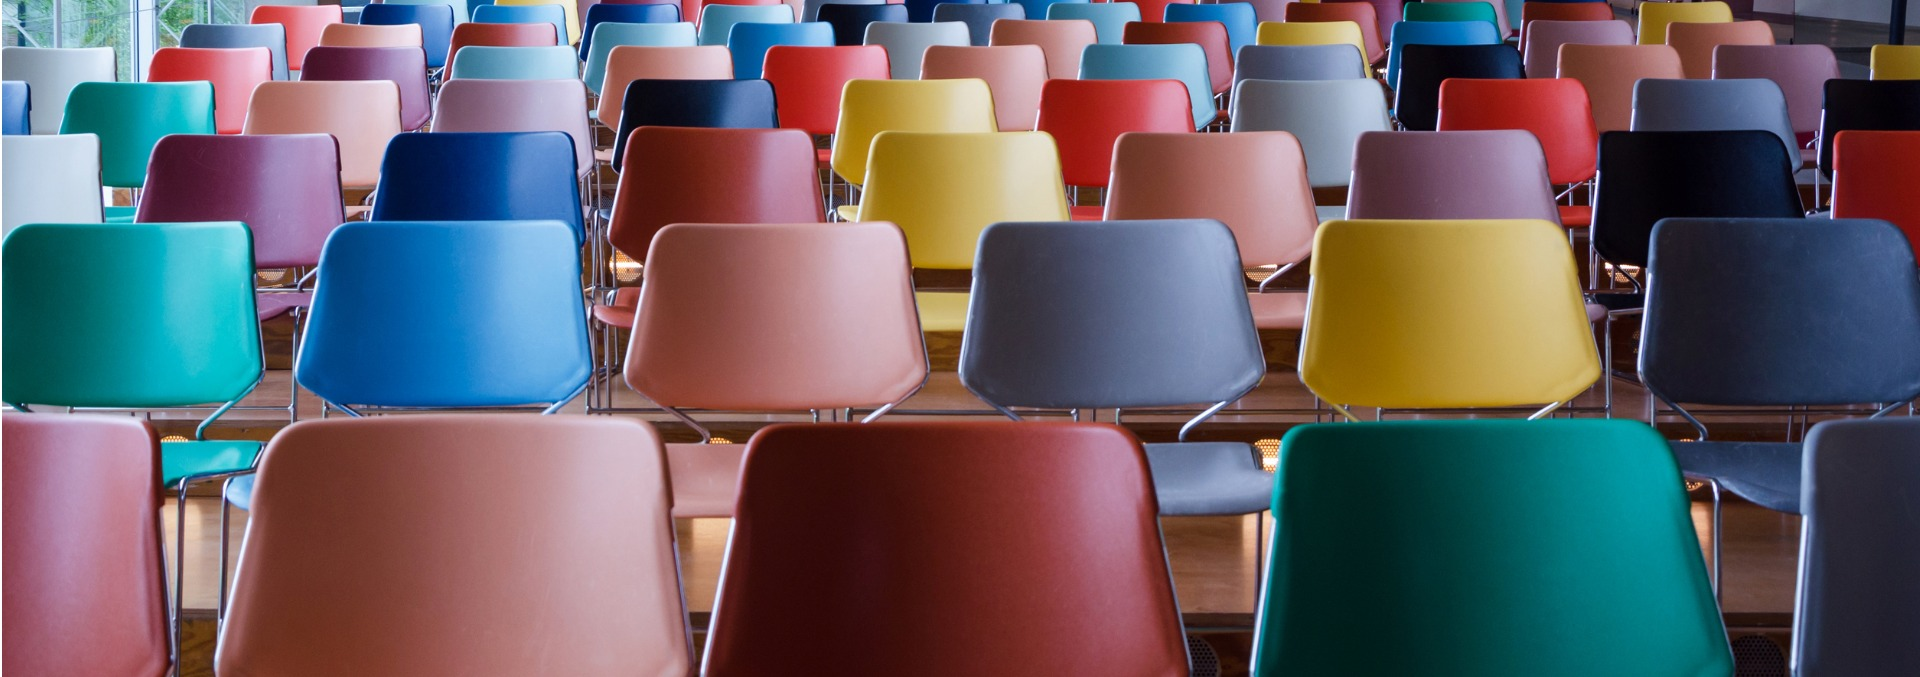 rows-of-colorful-chairs-picture-id479087782 web banner.jpg